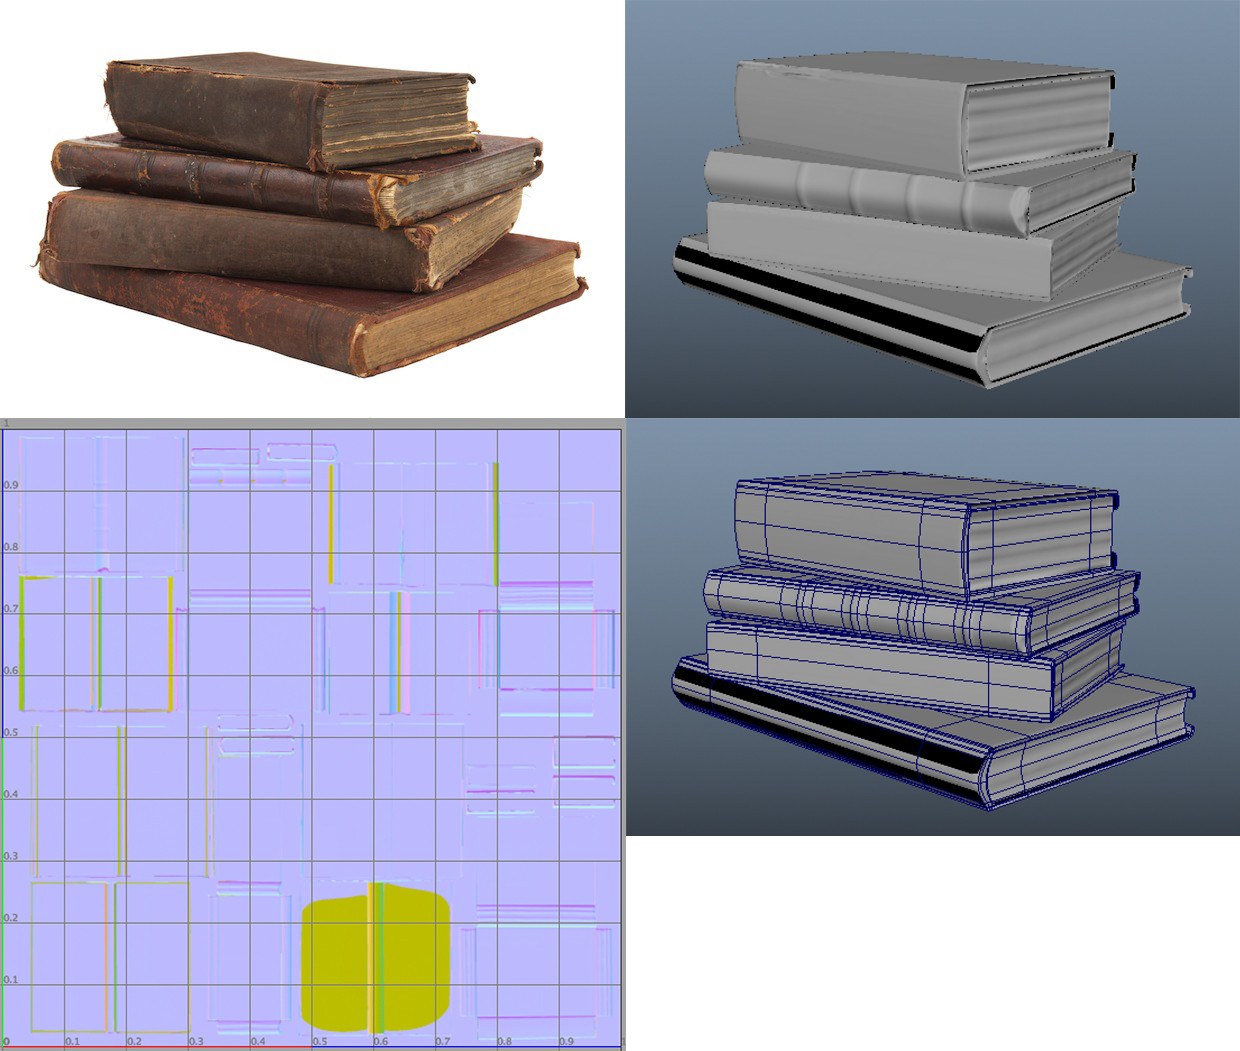 'Books' with UV and detail